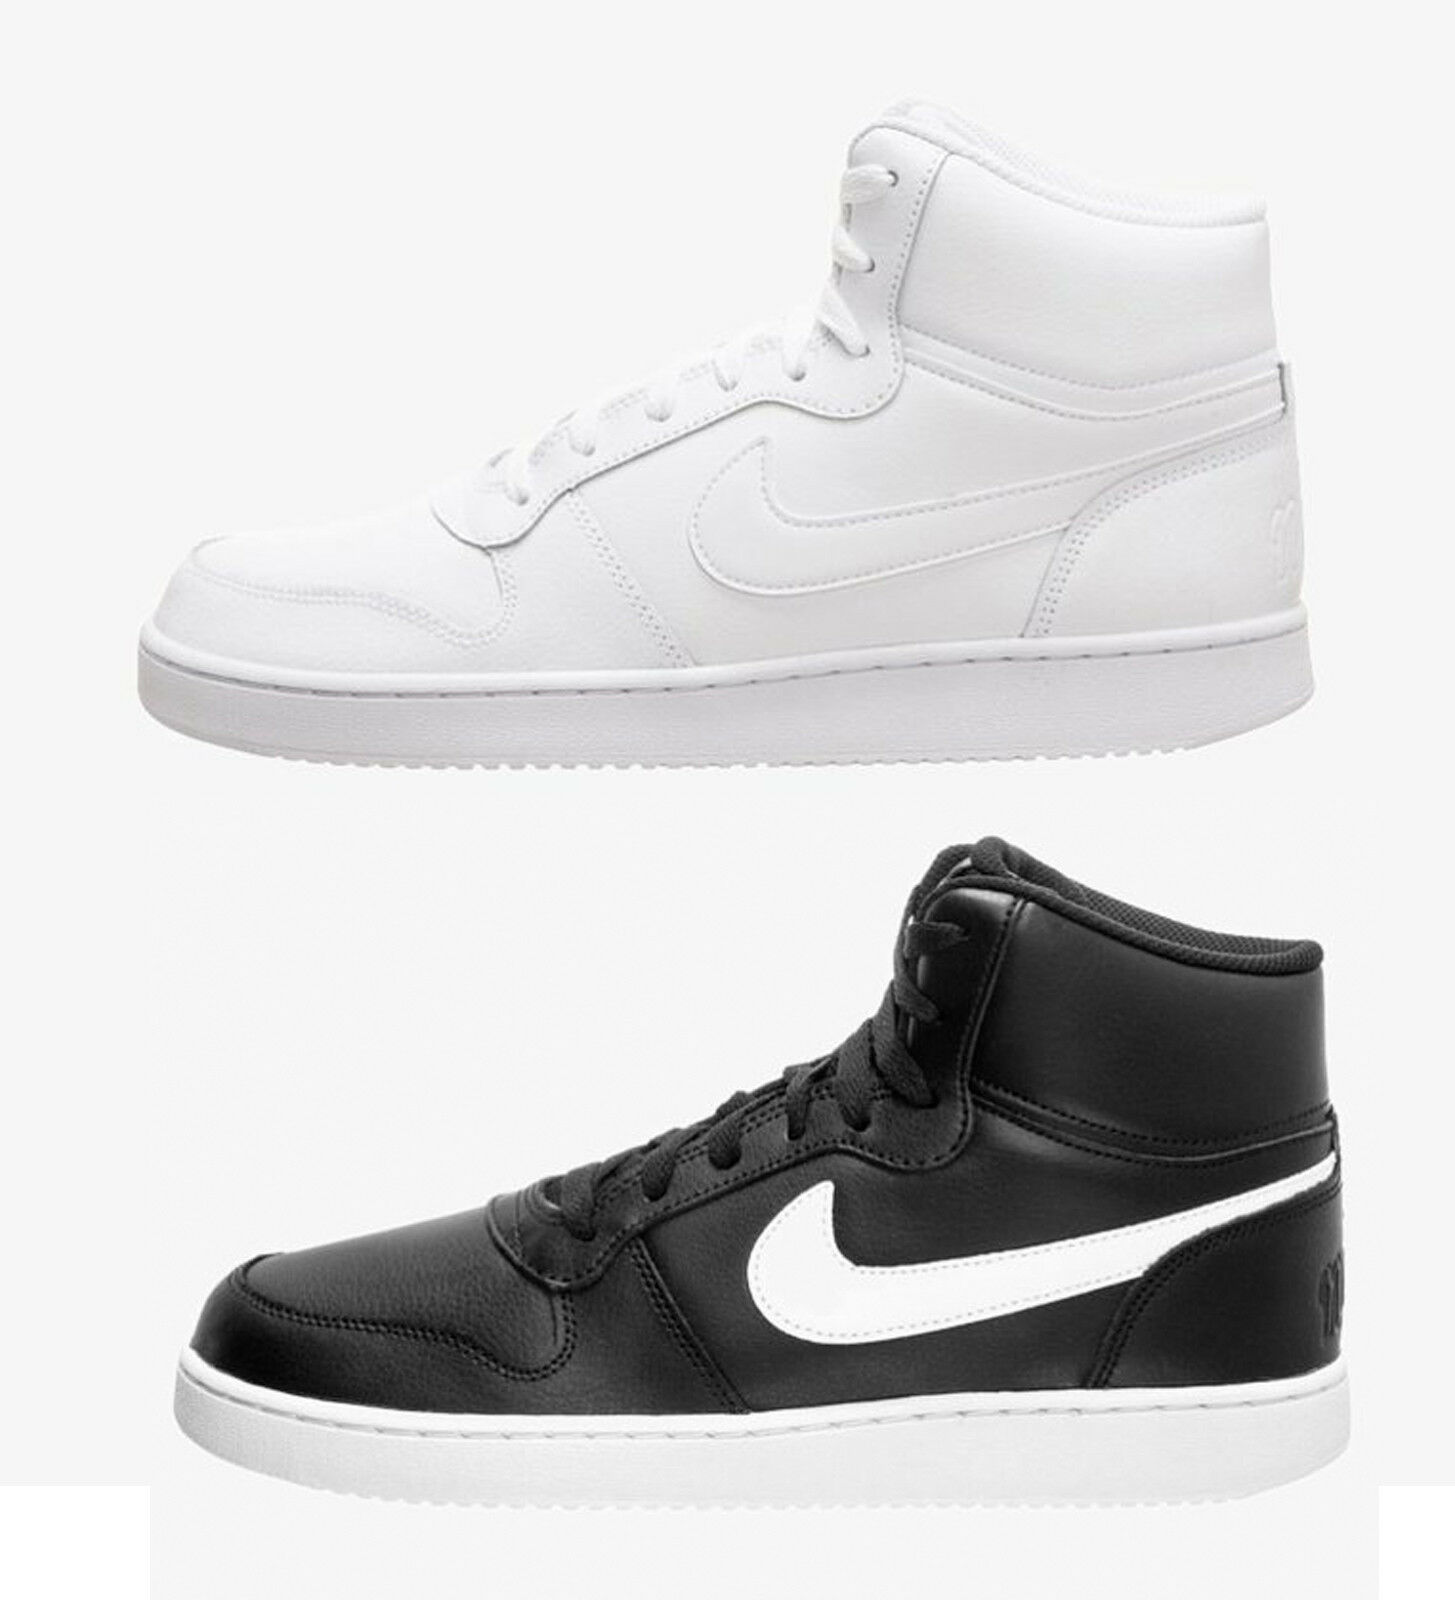 Nike Ebernon Mid AQ1773 Col. Bianco negro zapatillas hombres ispirate AIR FORCE ONE